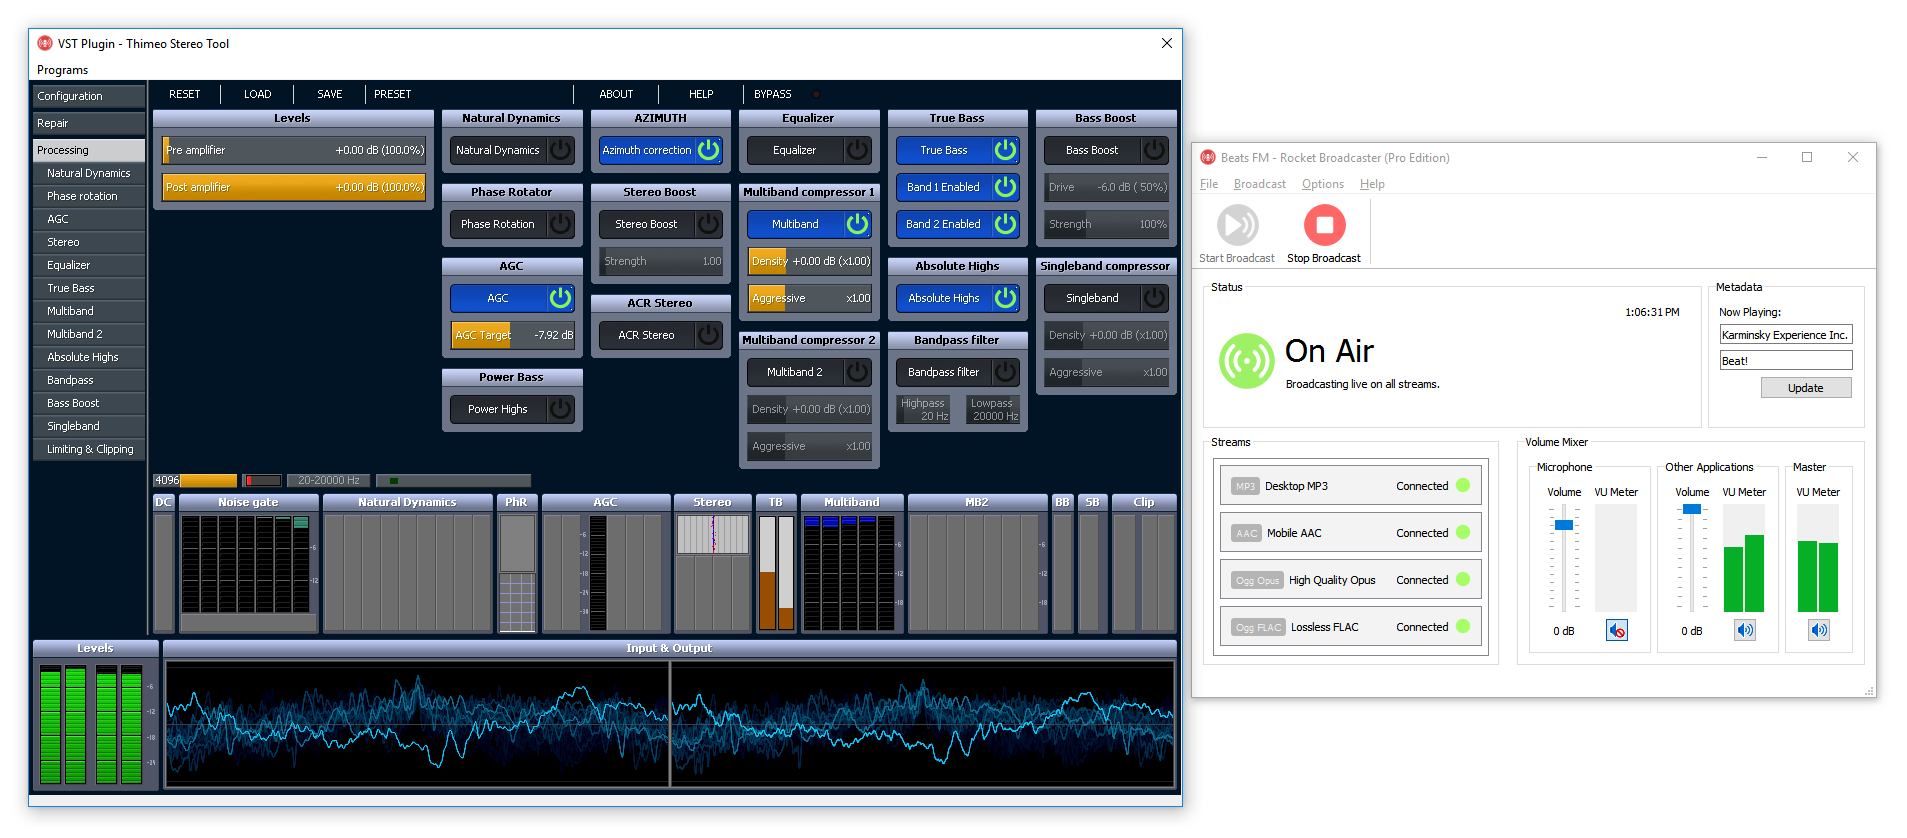 Rocket Broadcaster supports VST plugins for broadcast audio processing